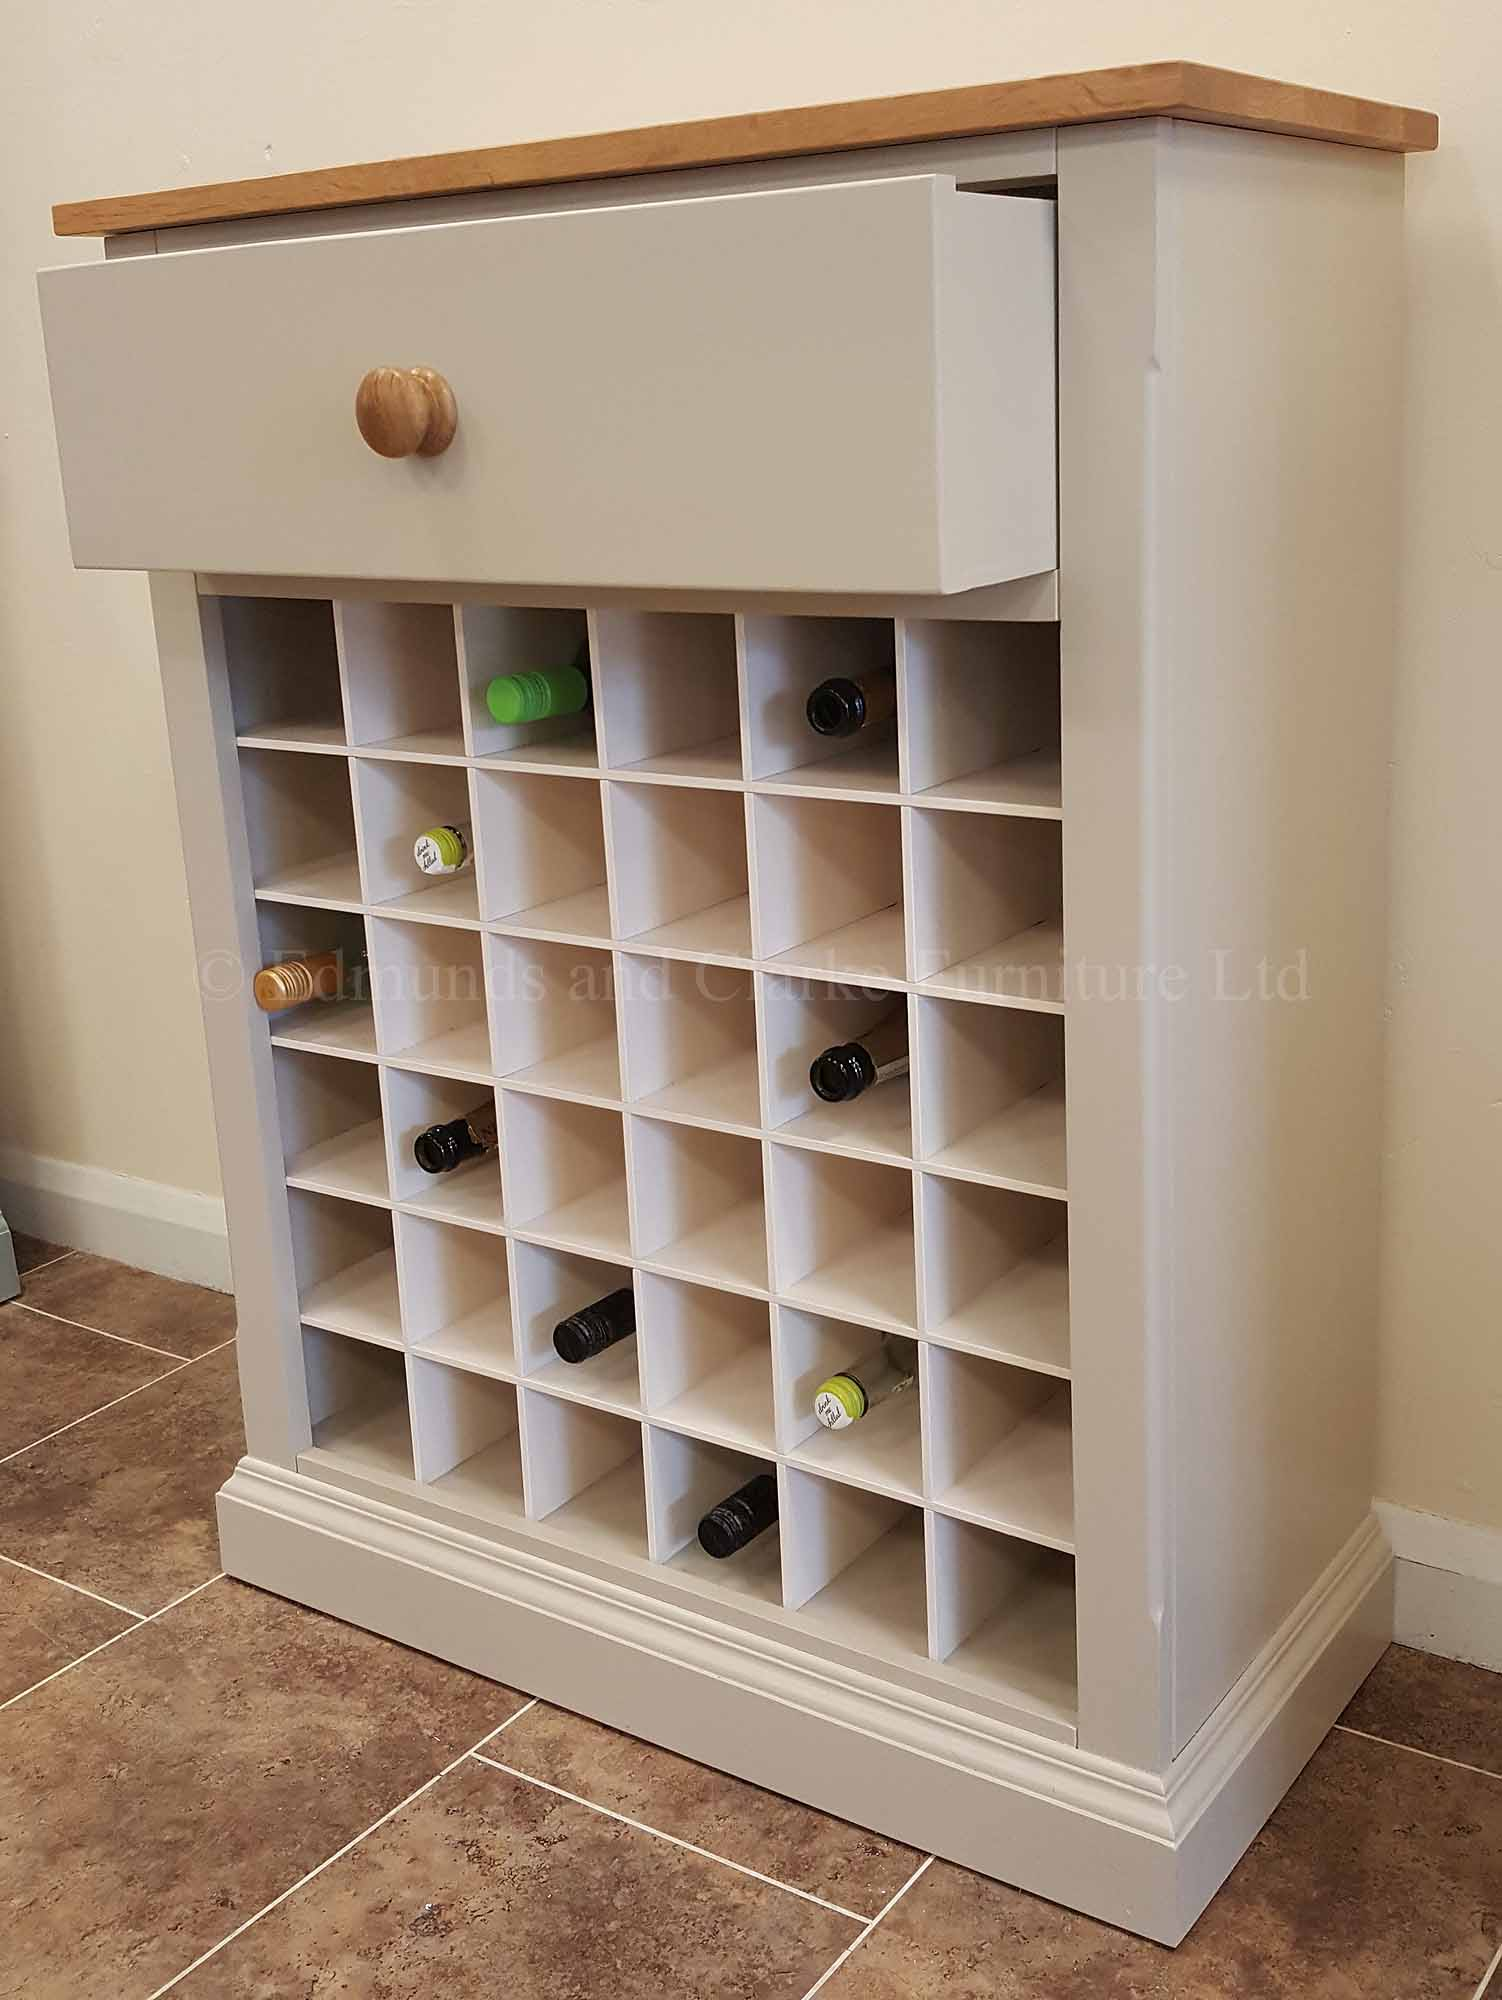 Painted wine rack hold 36 wine bottles, choice of colours and tops